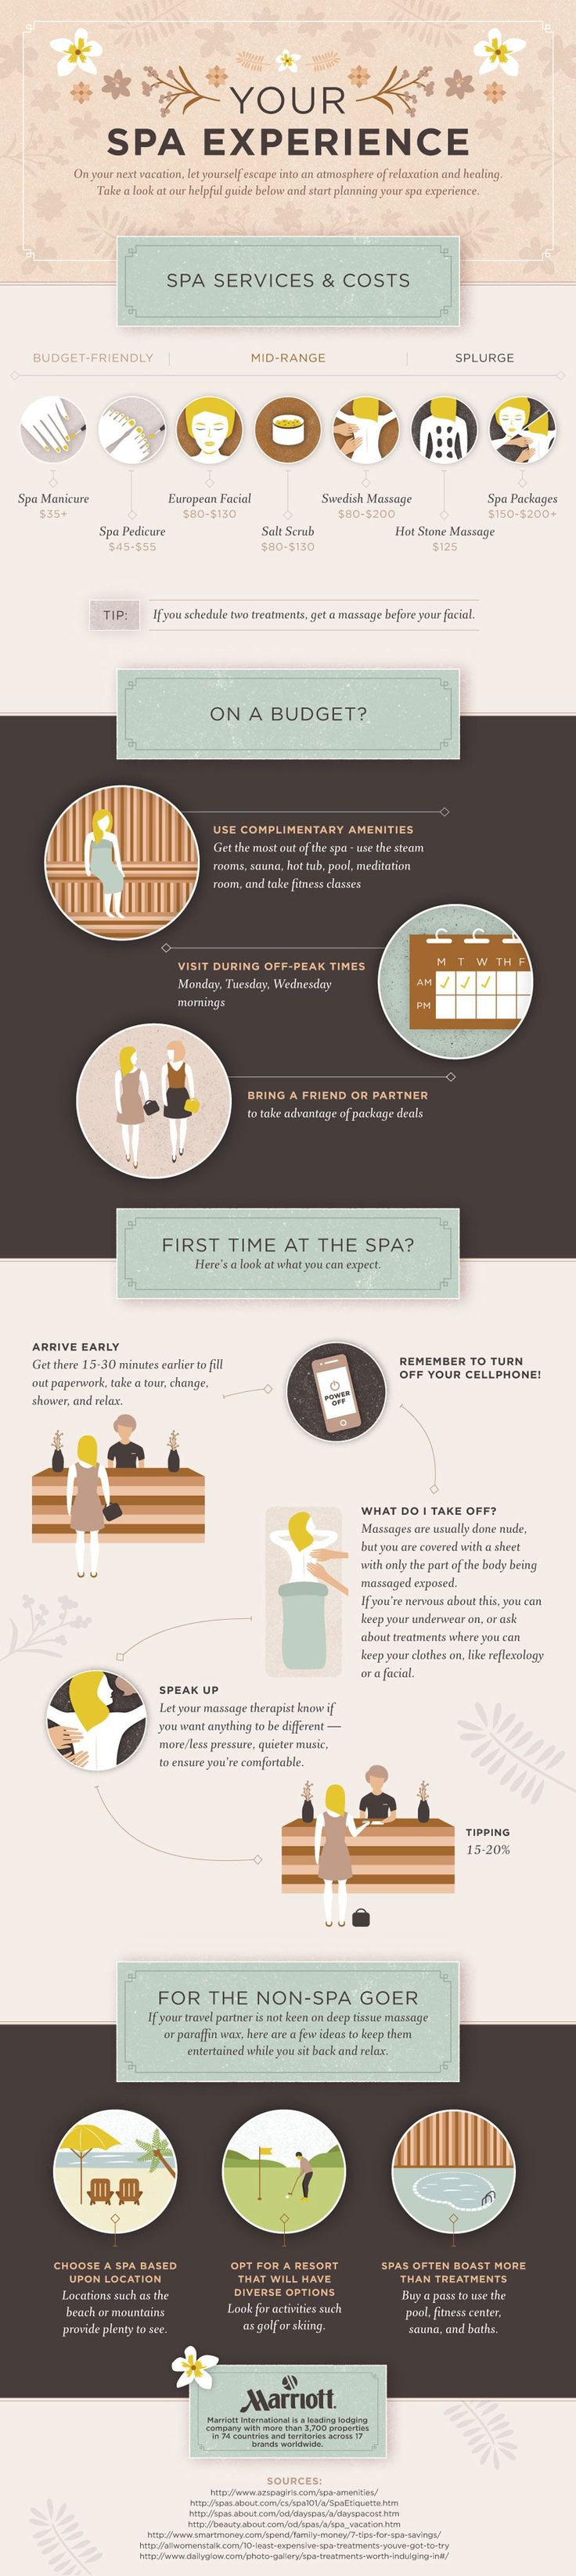 spa experience tips relax and transform what to expect before your first spa experience - Spa Und Wellness Zentren Kreative Architektur